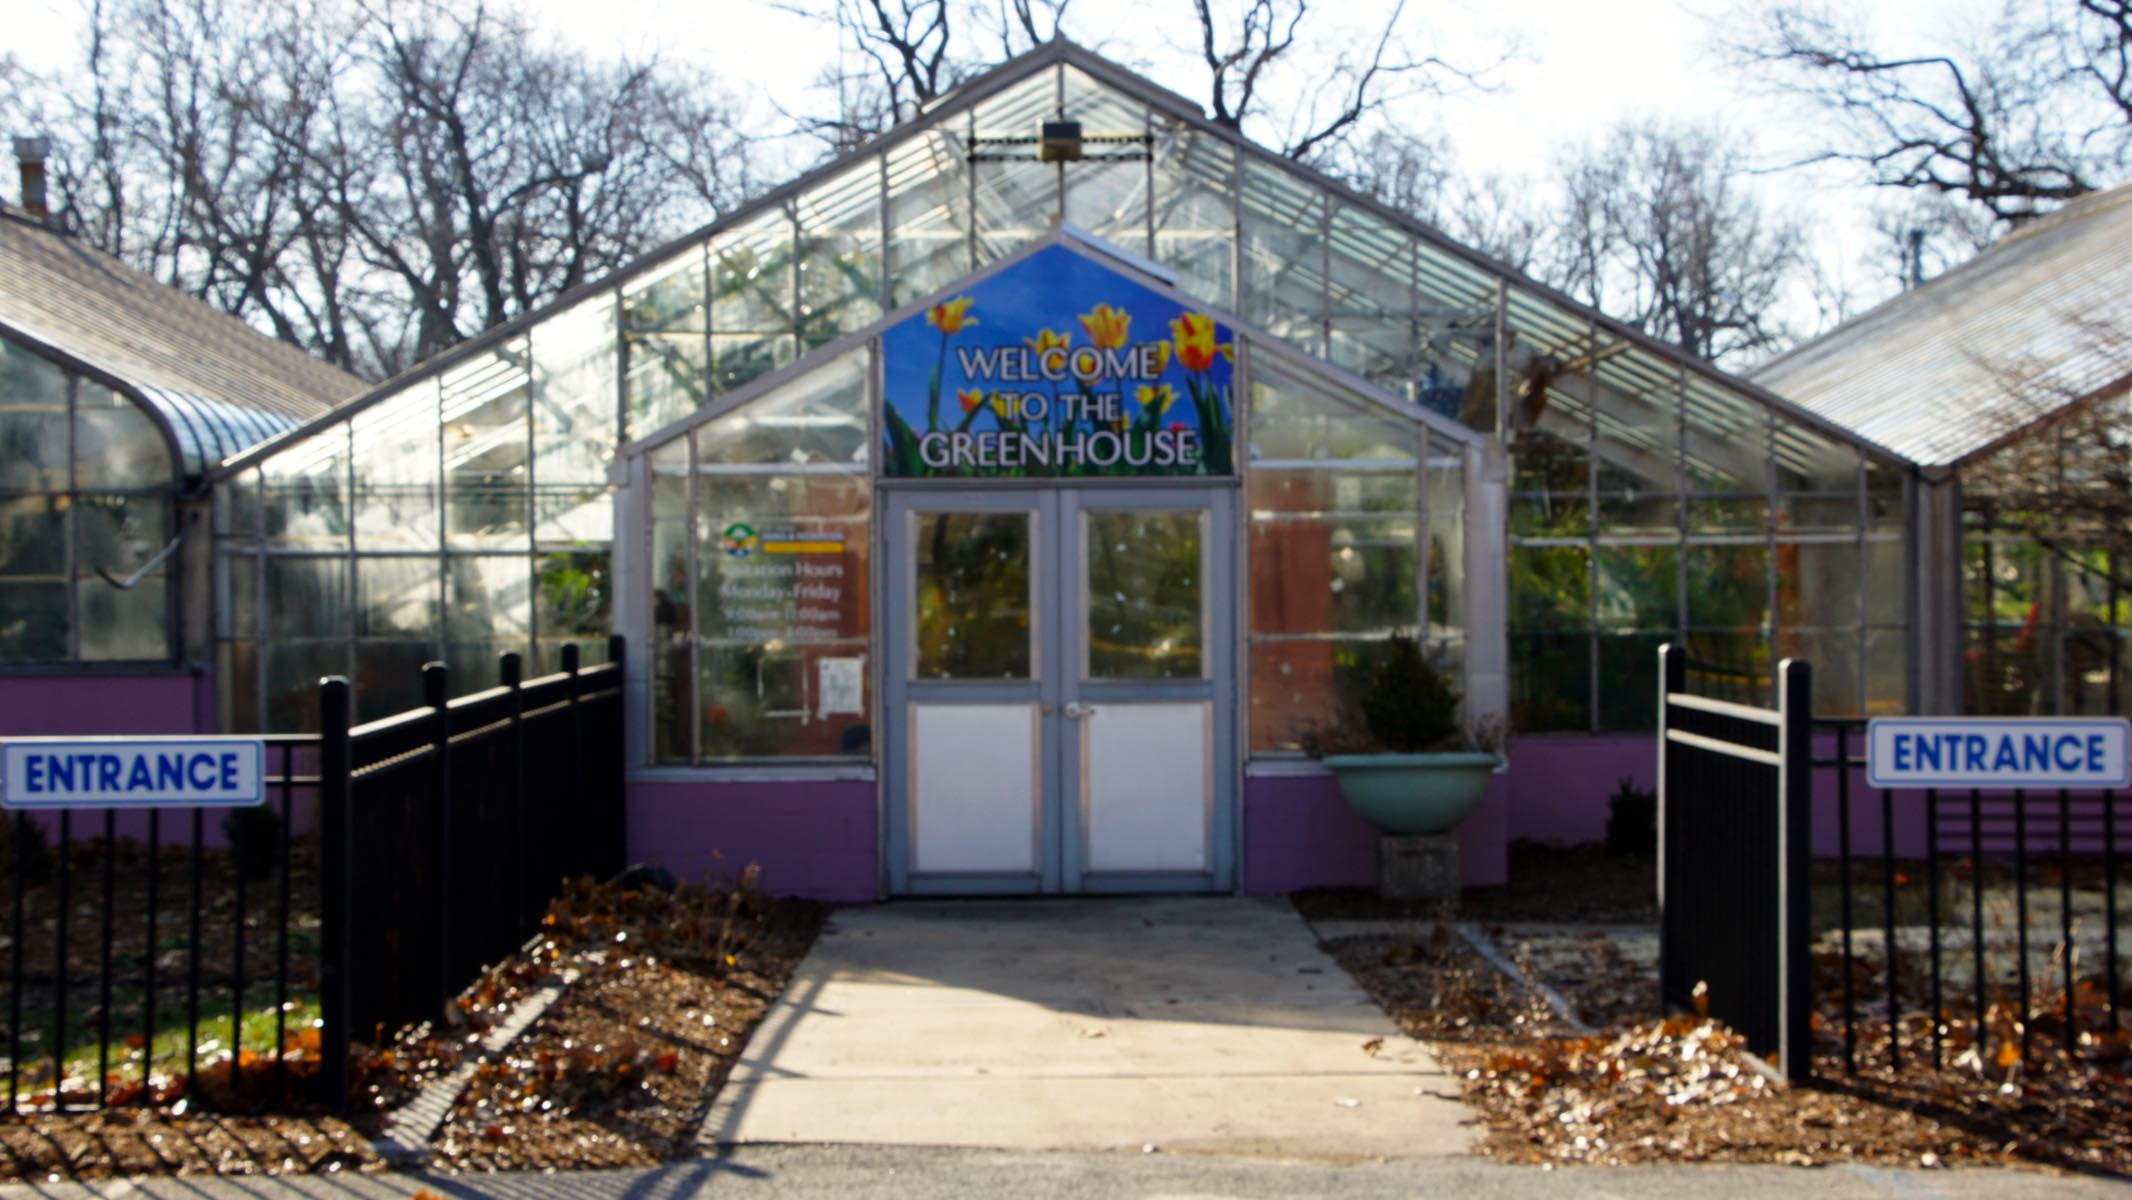 Greenhouse Building Front View